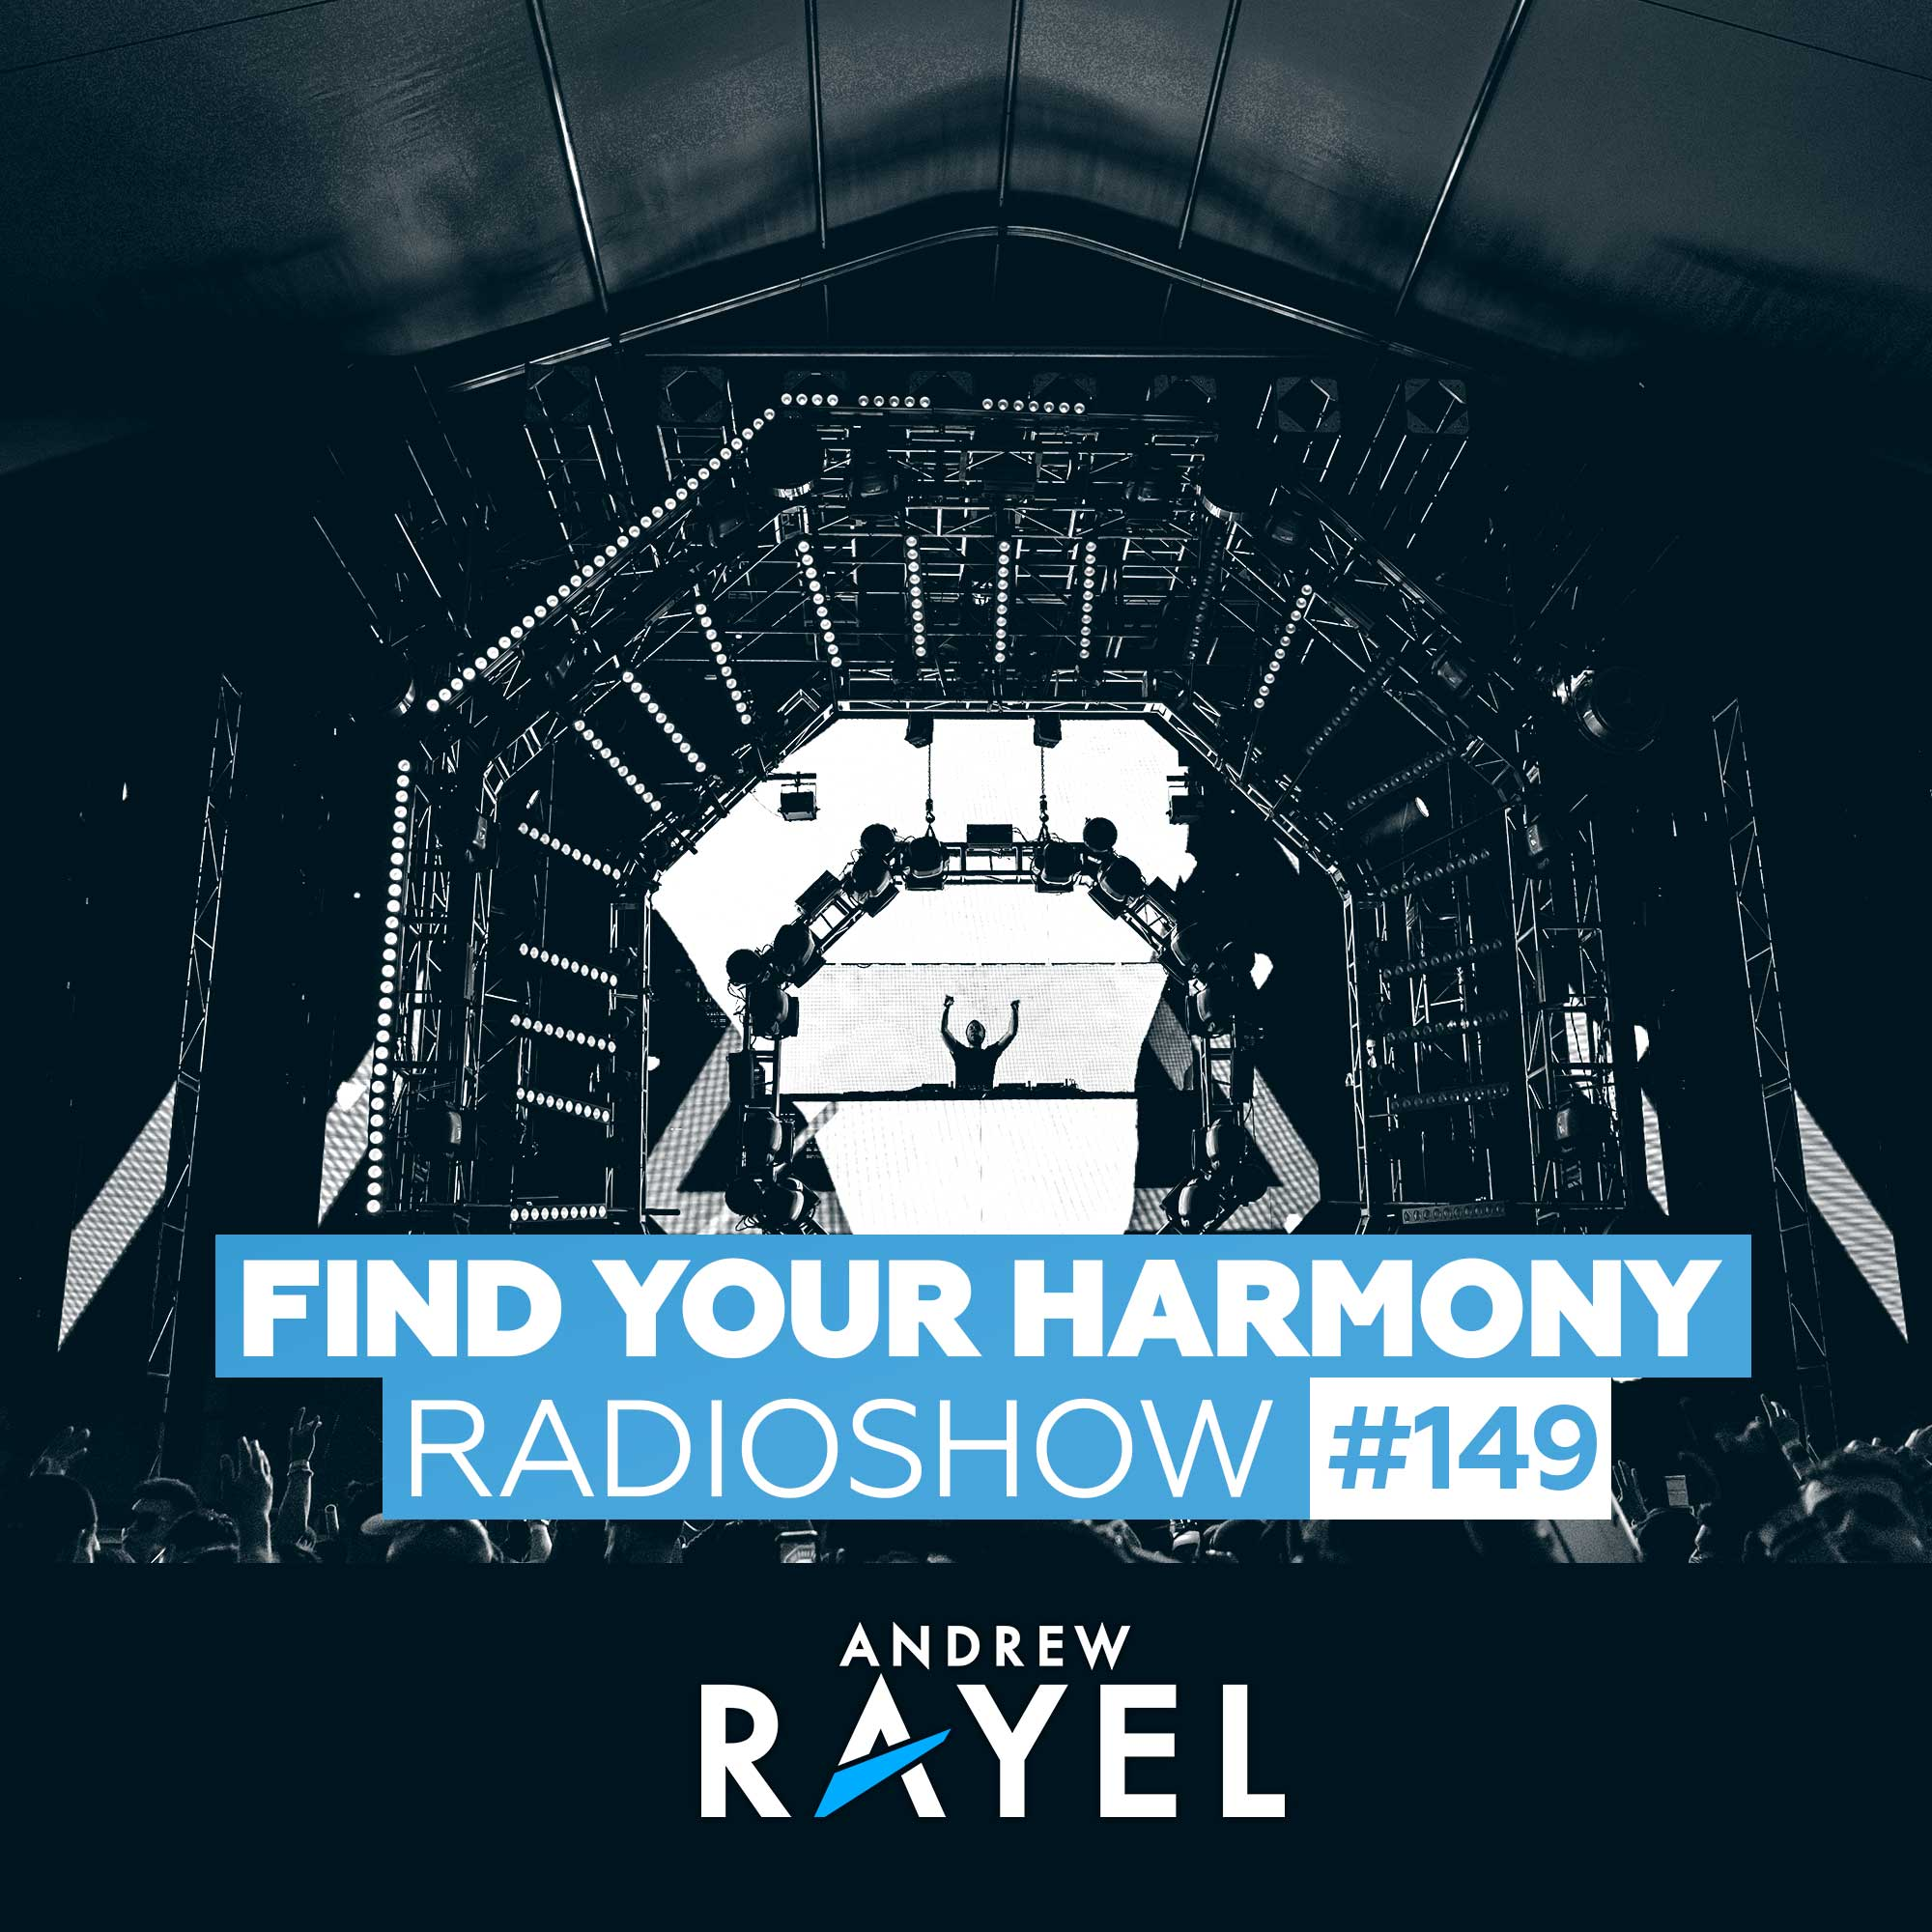 Find Your Harmony Radioshow #149